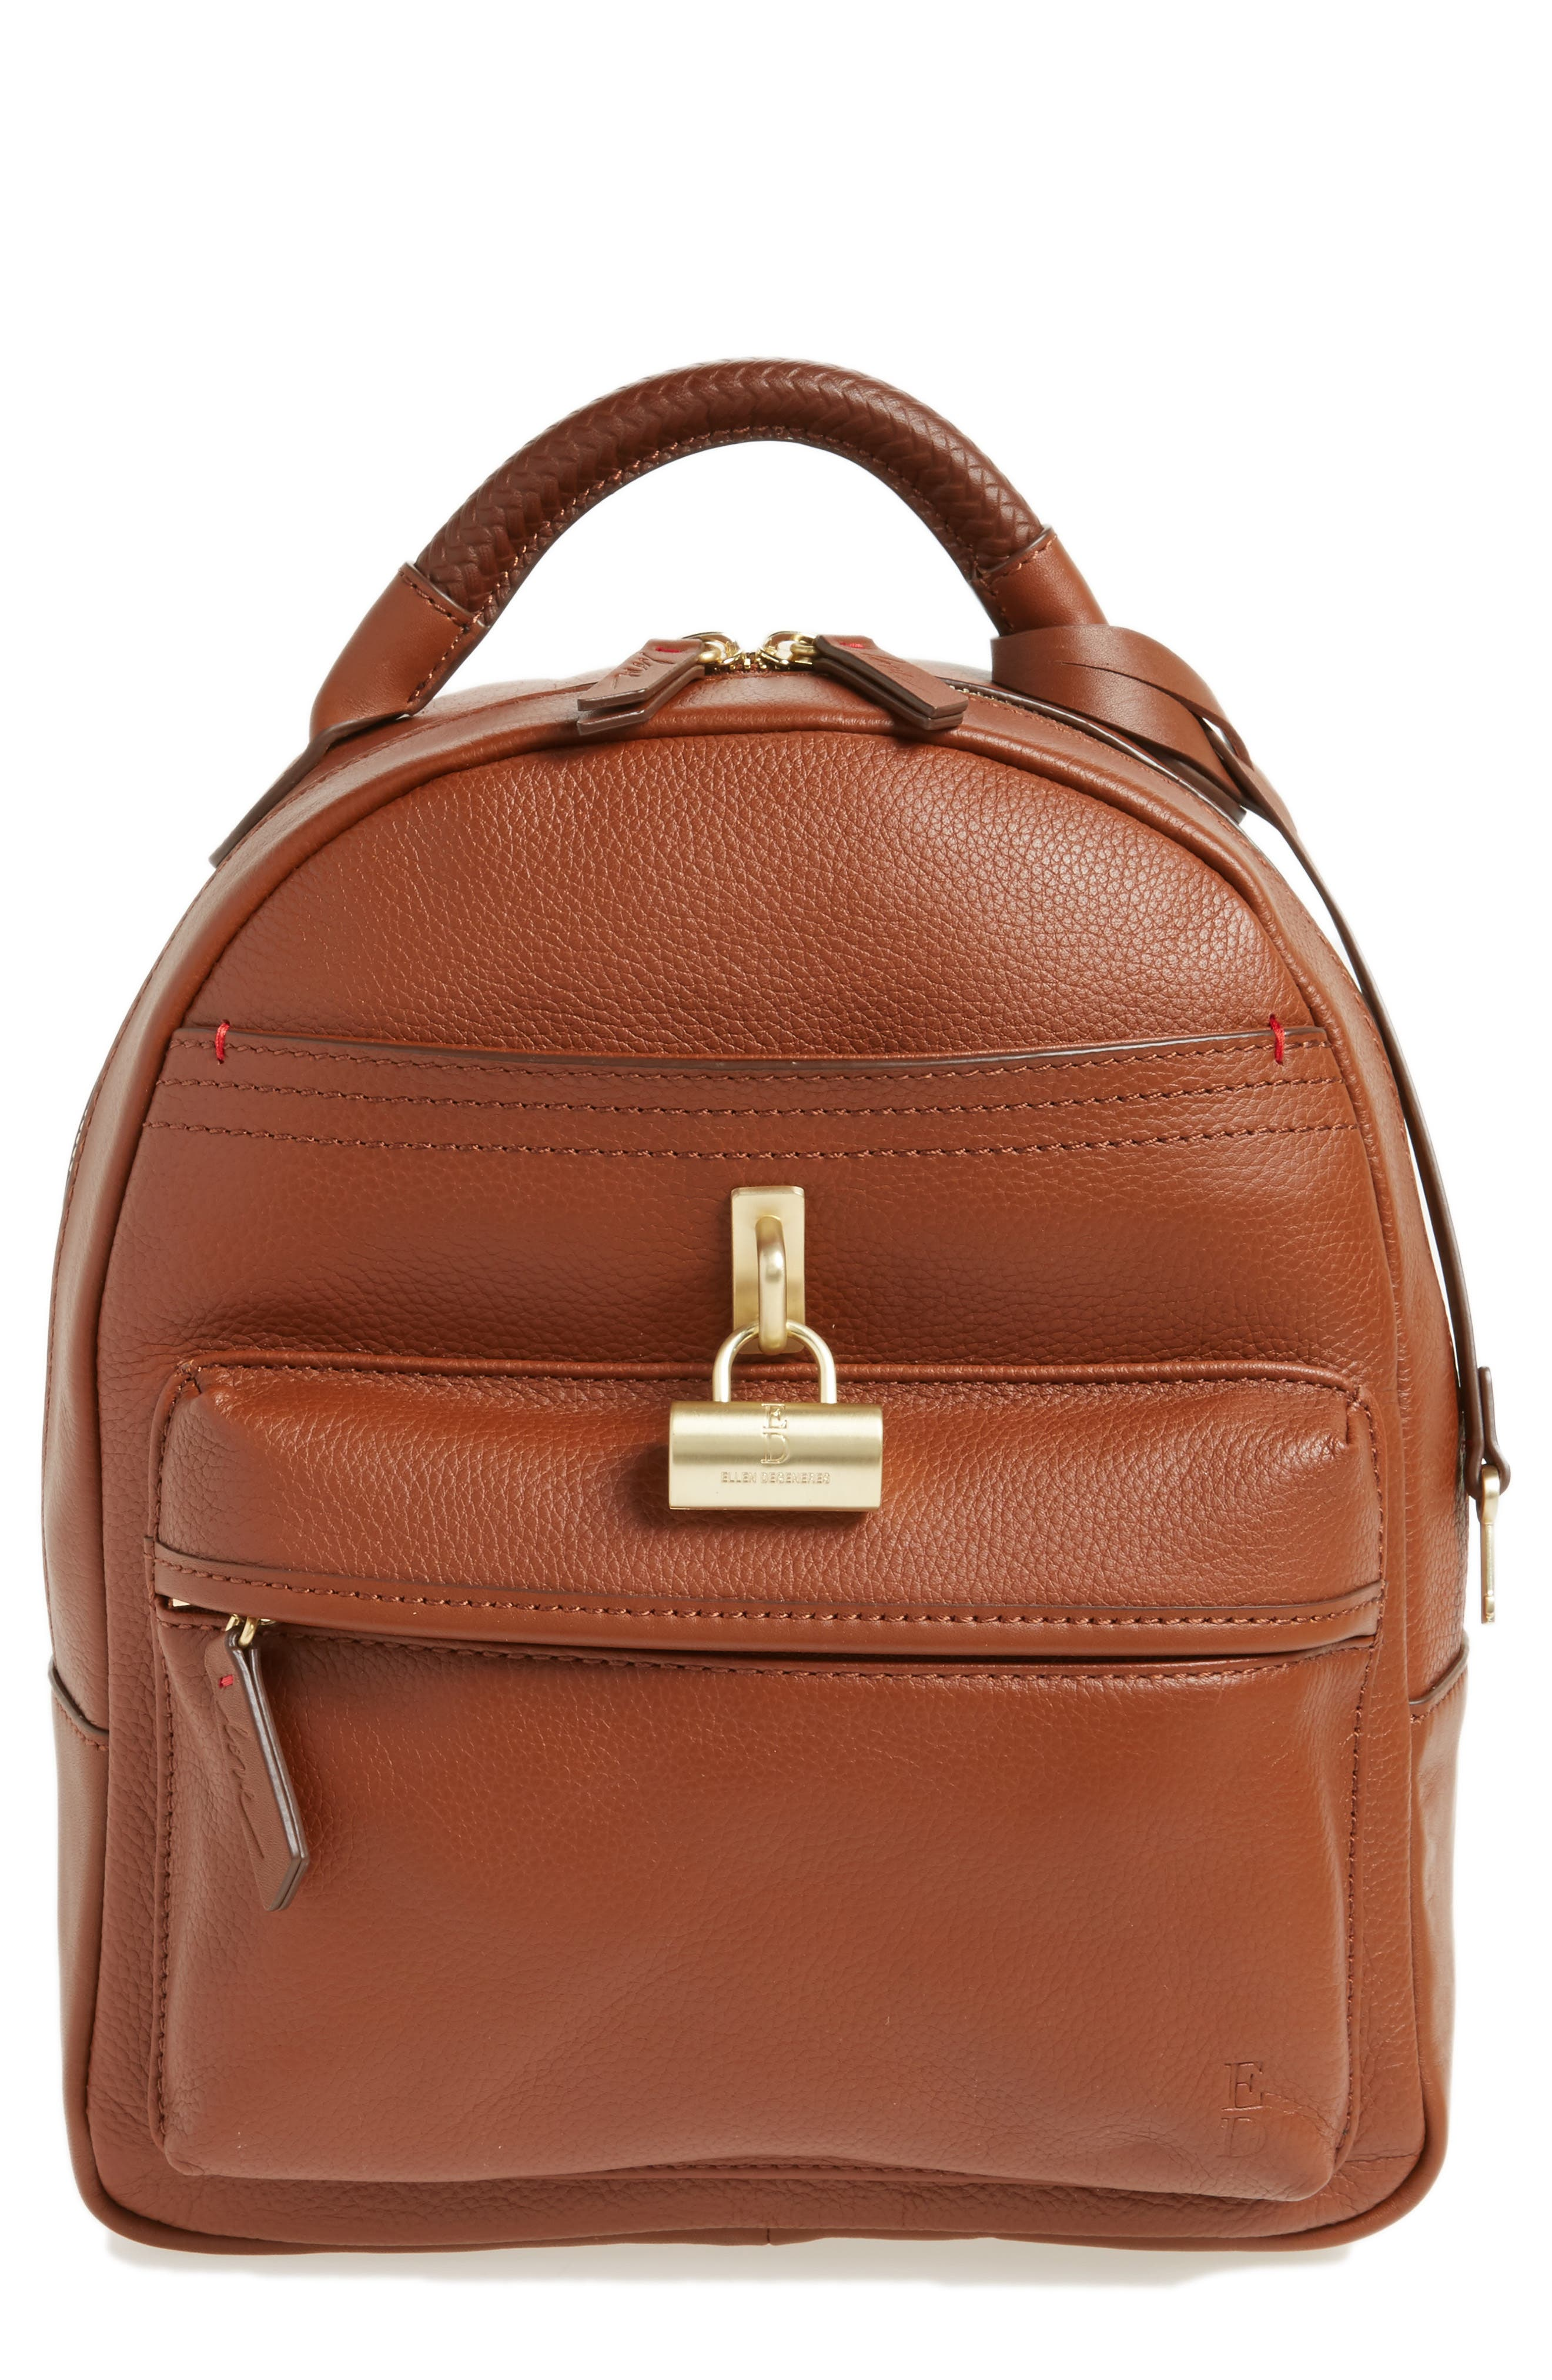 Brody Leather Backpack,                             Main thumbnail 1, color,                             242